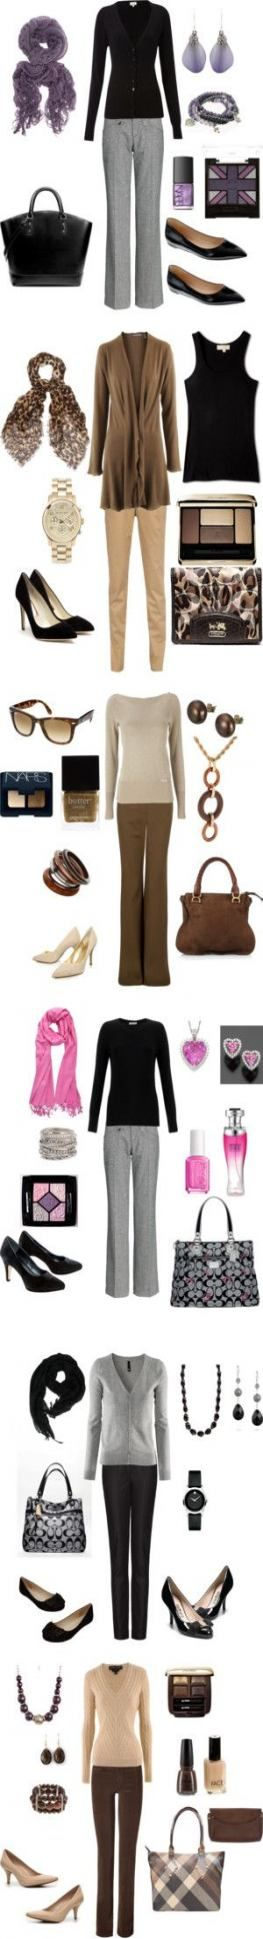 New fashion casual business stylists Ideas